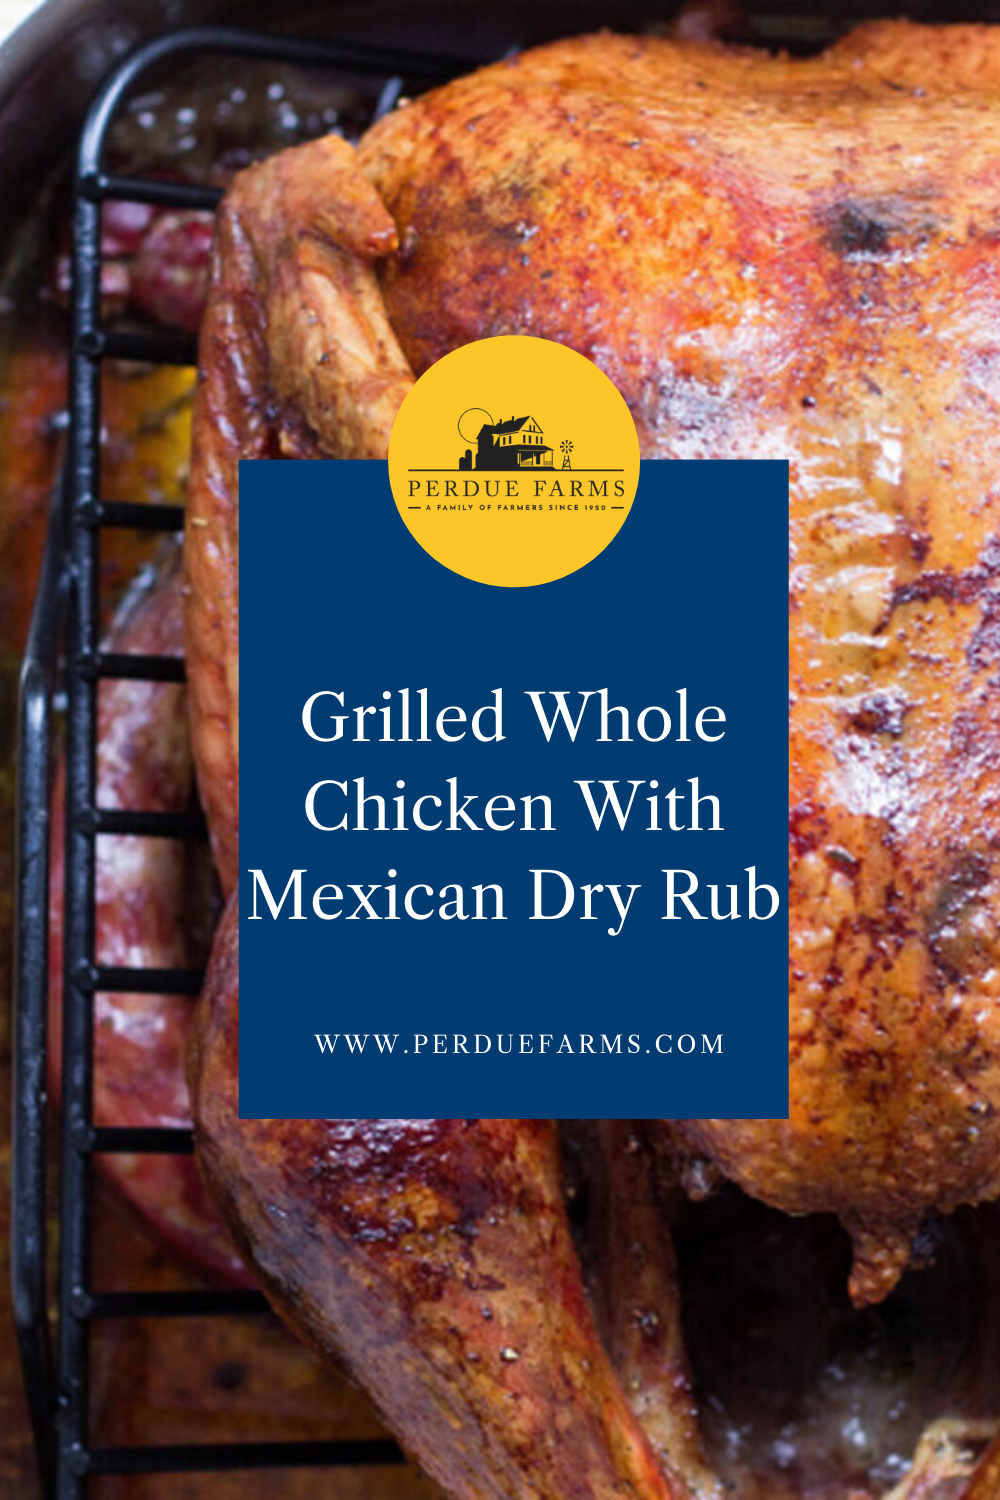 Grilled Whole Chicken With Dry Rub Grilled Whole Chicken Whole Chicken Dry Rub Recipes